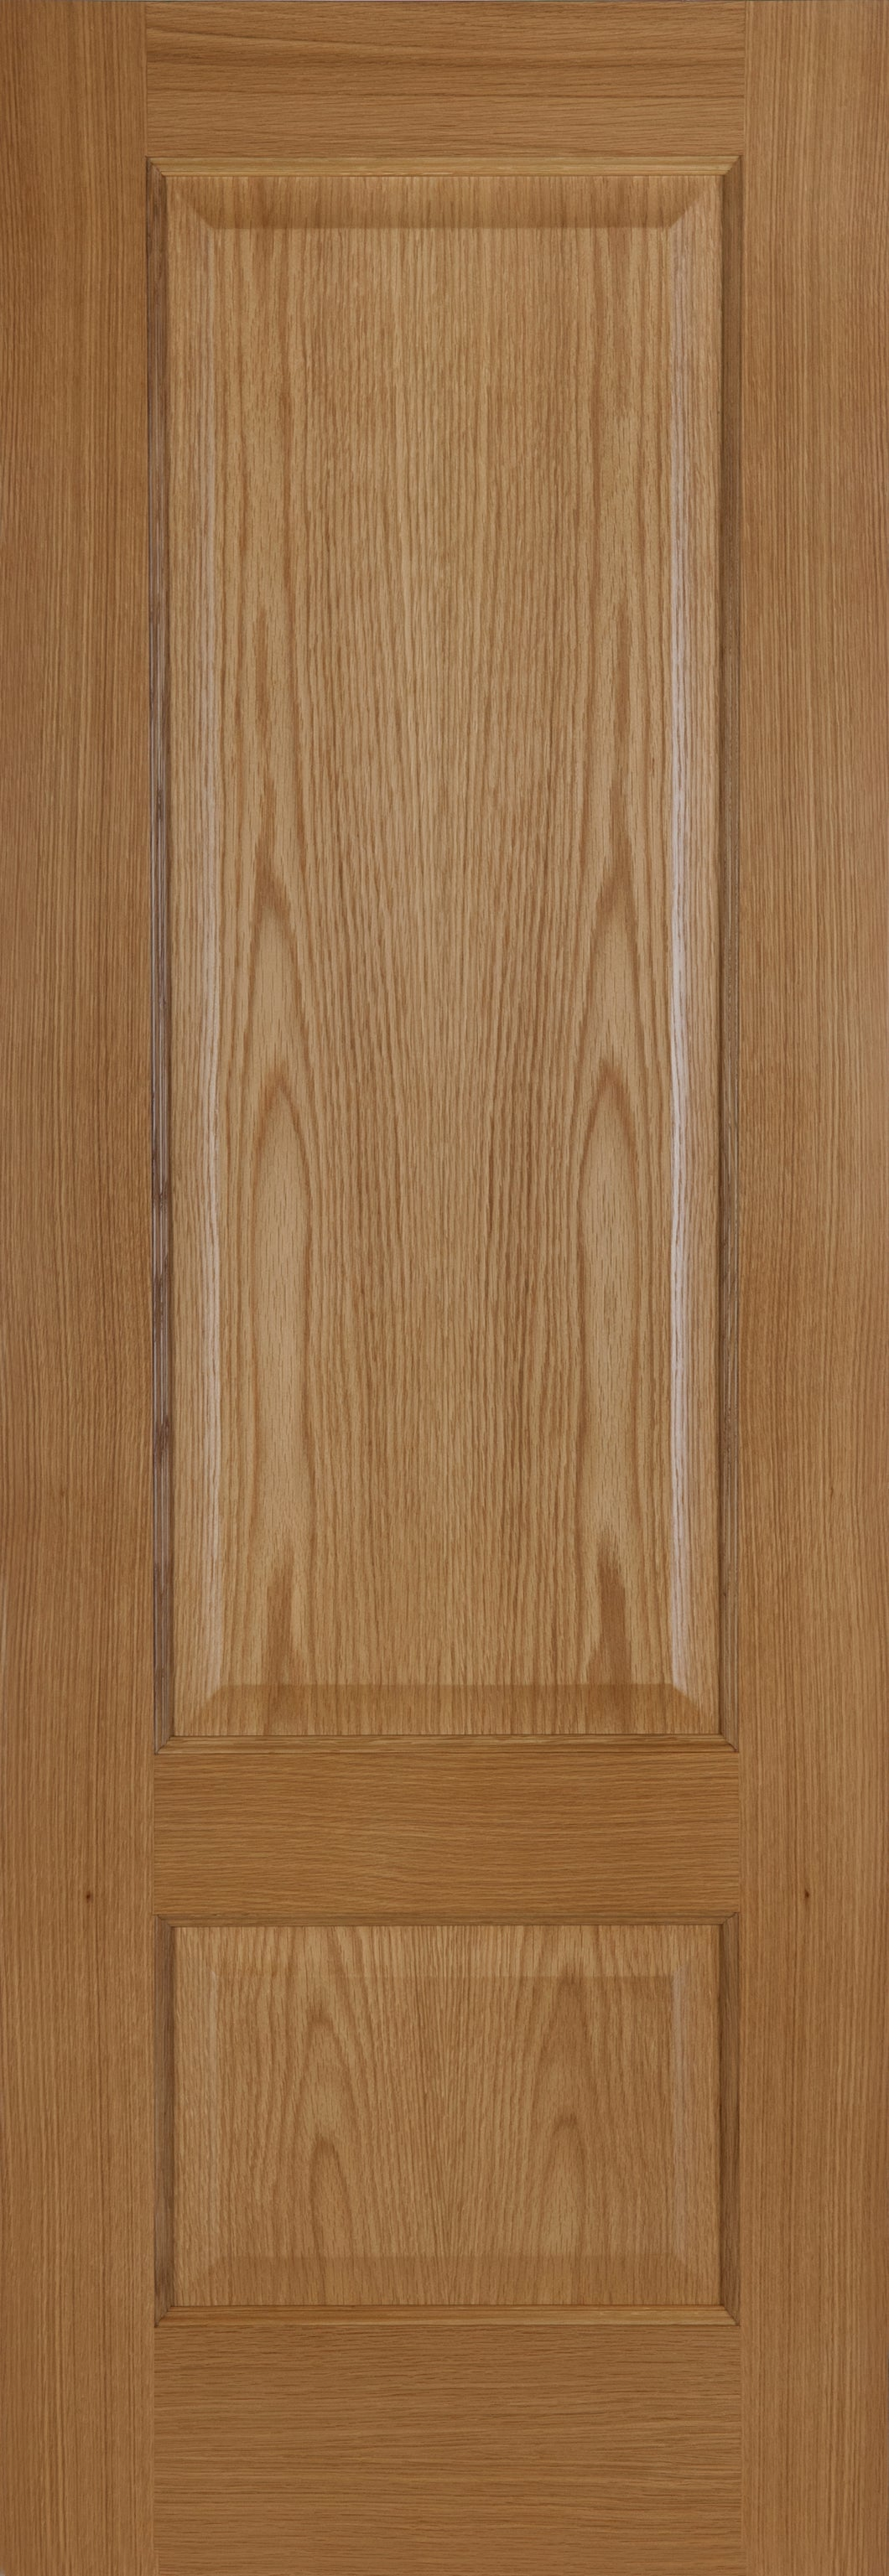 Heath Prefinished Oak